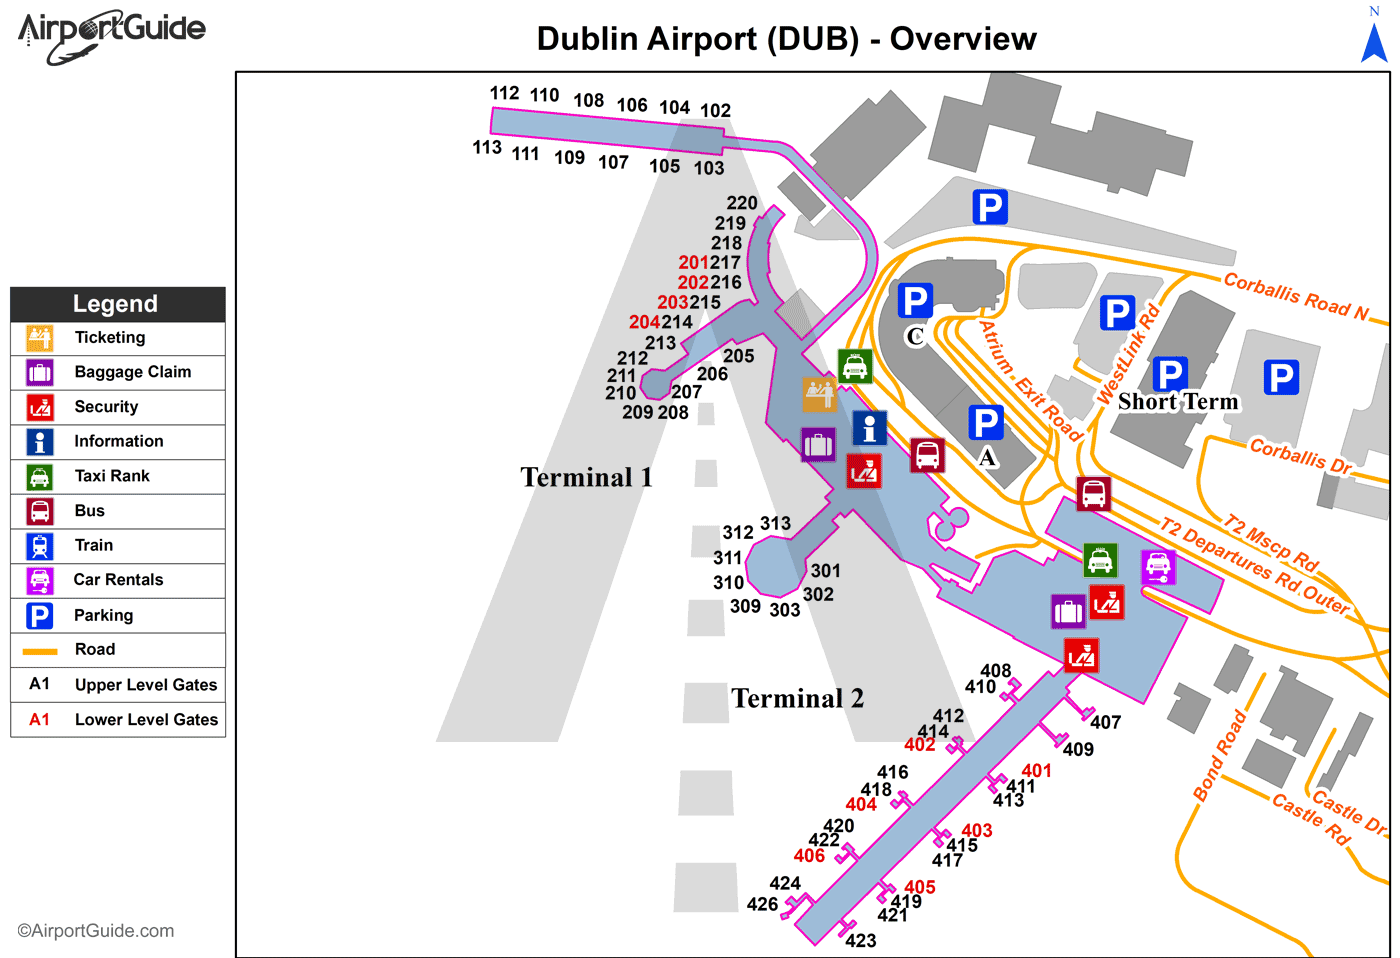 Dublin - Dublin (DUB) Airport Terminal Map - Overview